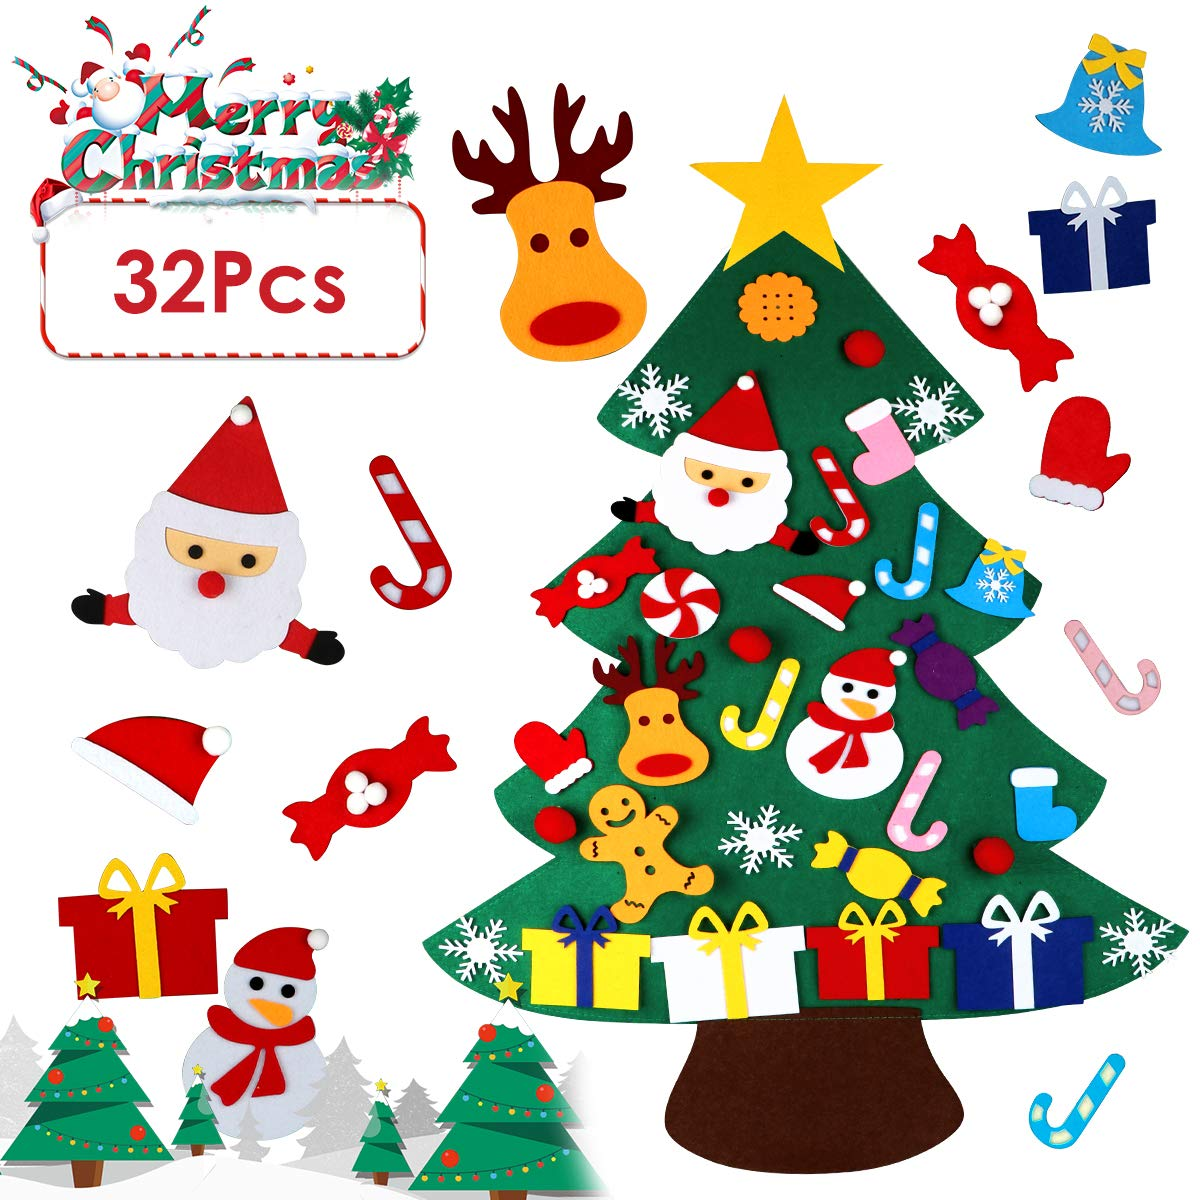 DC-BEAUTIFUL 3.28 Ft DIY Felt Christmas Tree Set, Large Size Wall Christmas Tree Set with 32 Pcs 3D Ornaments, Christmas Hanging Decor for Home, Store, Mall